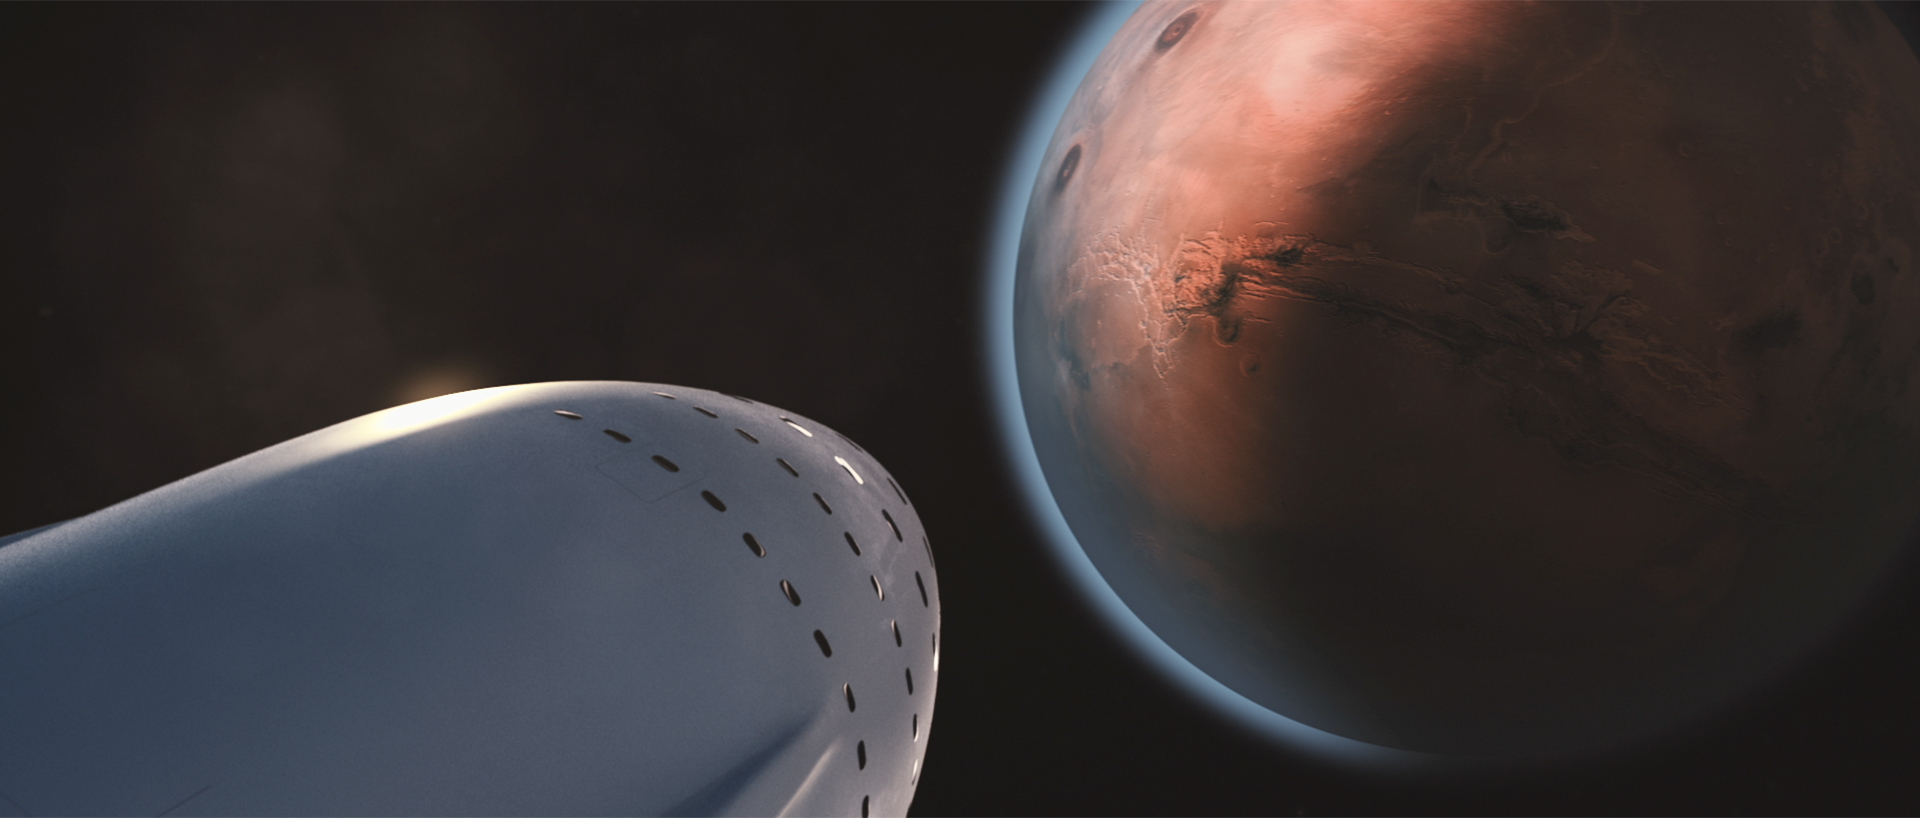 An artist's illustration of SpaceX's interplanetary spaceship arriving at Mars. SpaceX envisions flying 100 people to Mars on reusable colony ships.